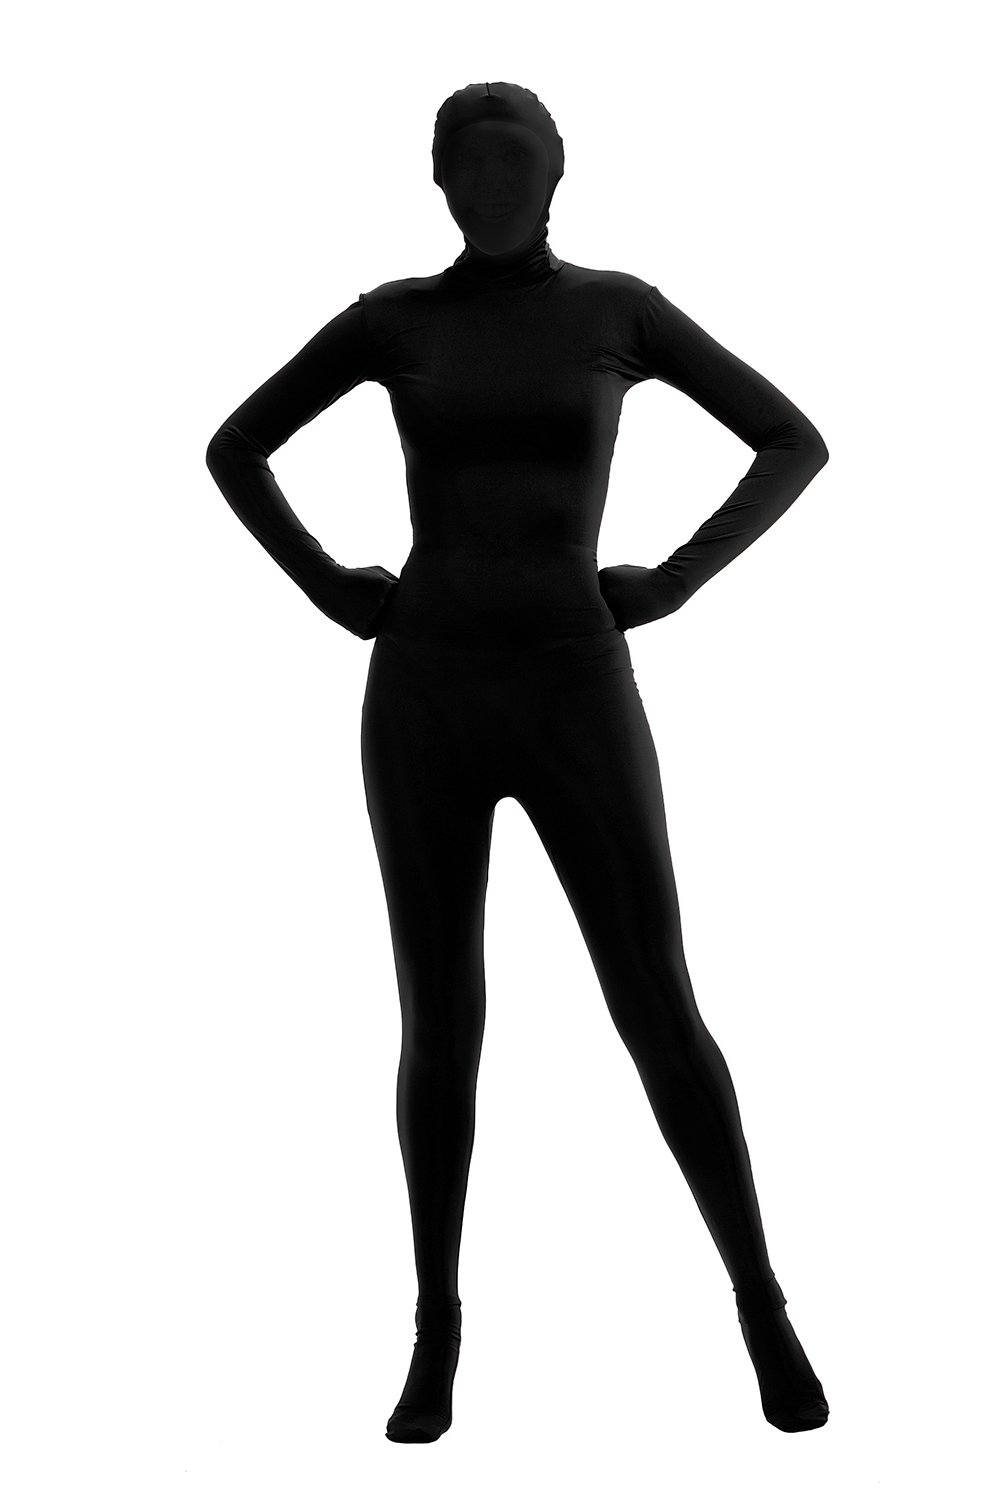 Full Bodysuit Womens Lycra Spandex Stretch Costume Zentai Disappearing Man Body Suit 61nBMTNKUiL